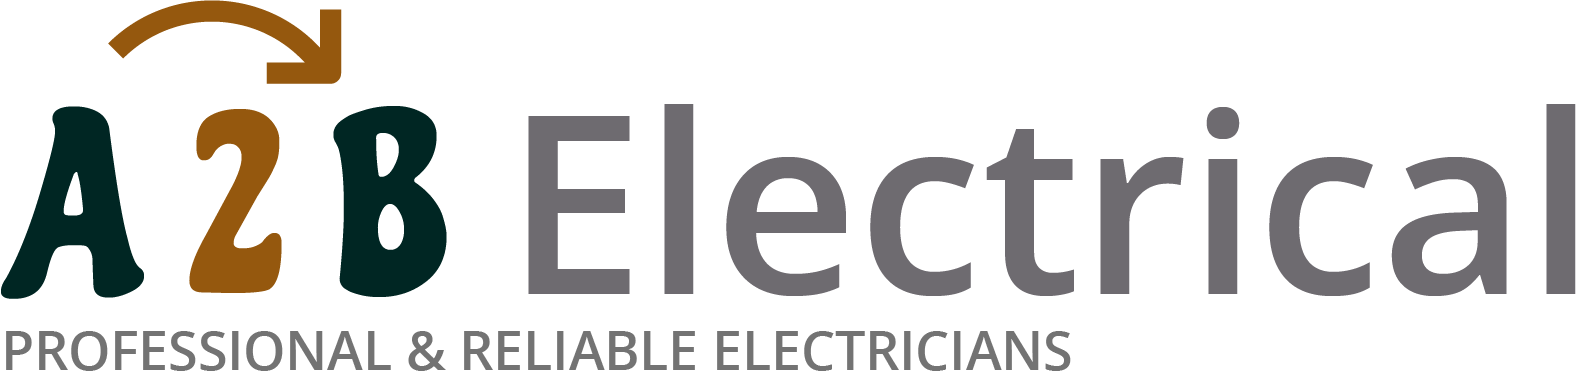 If you have electrical wiring problems in Shipley, we can provide an electrician to have a look for you.